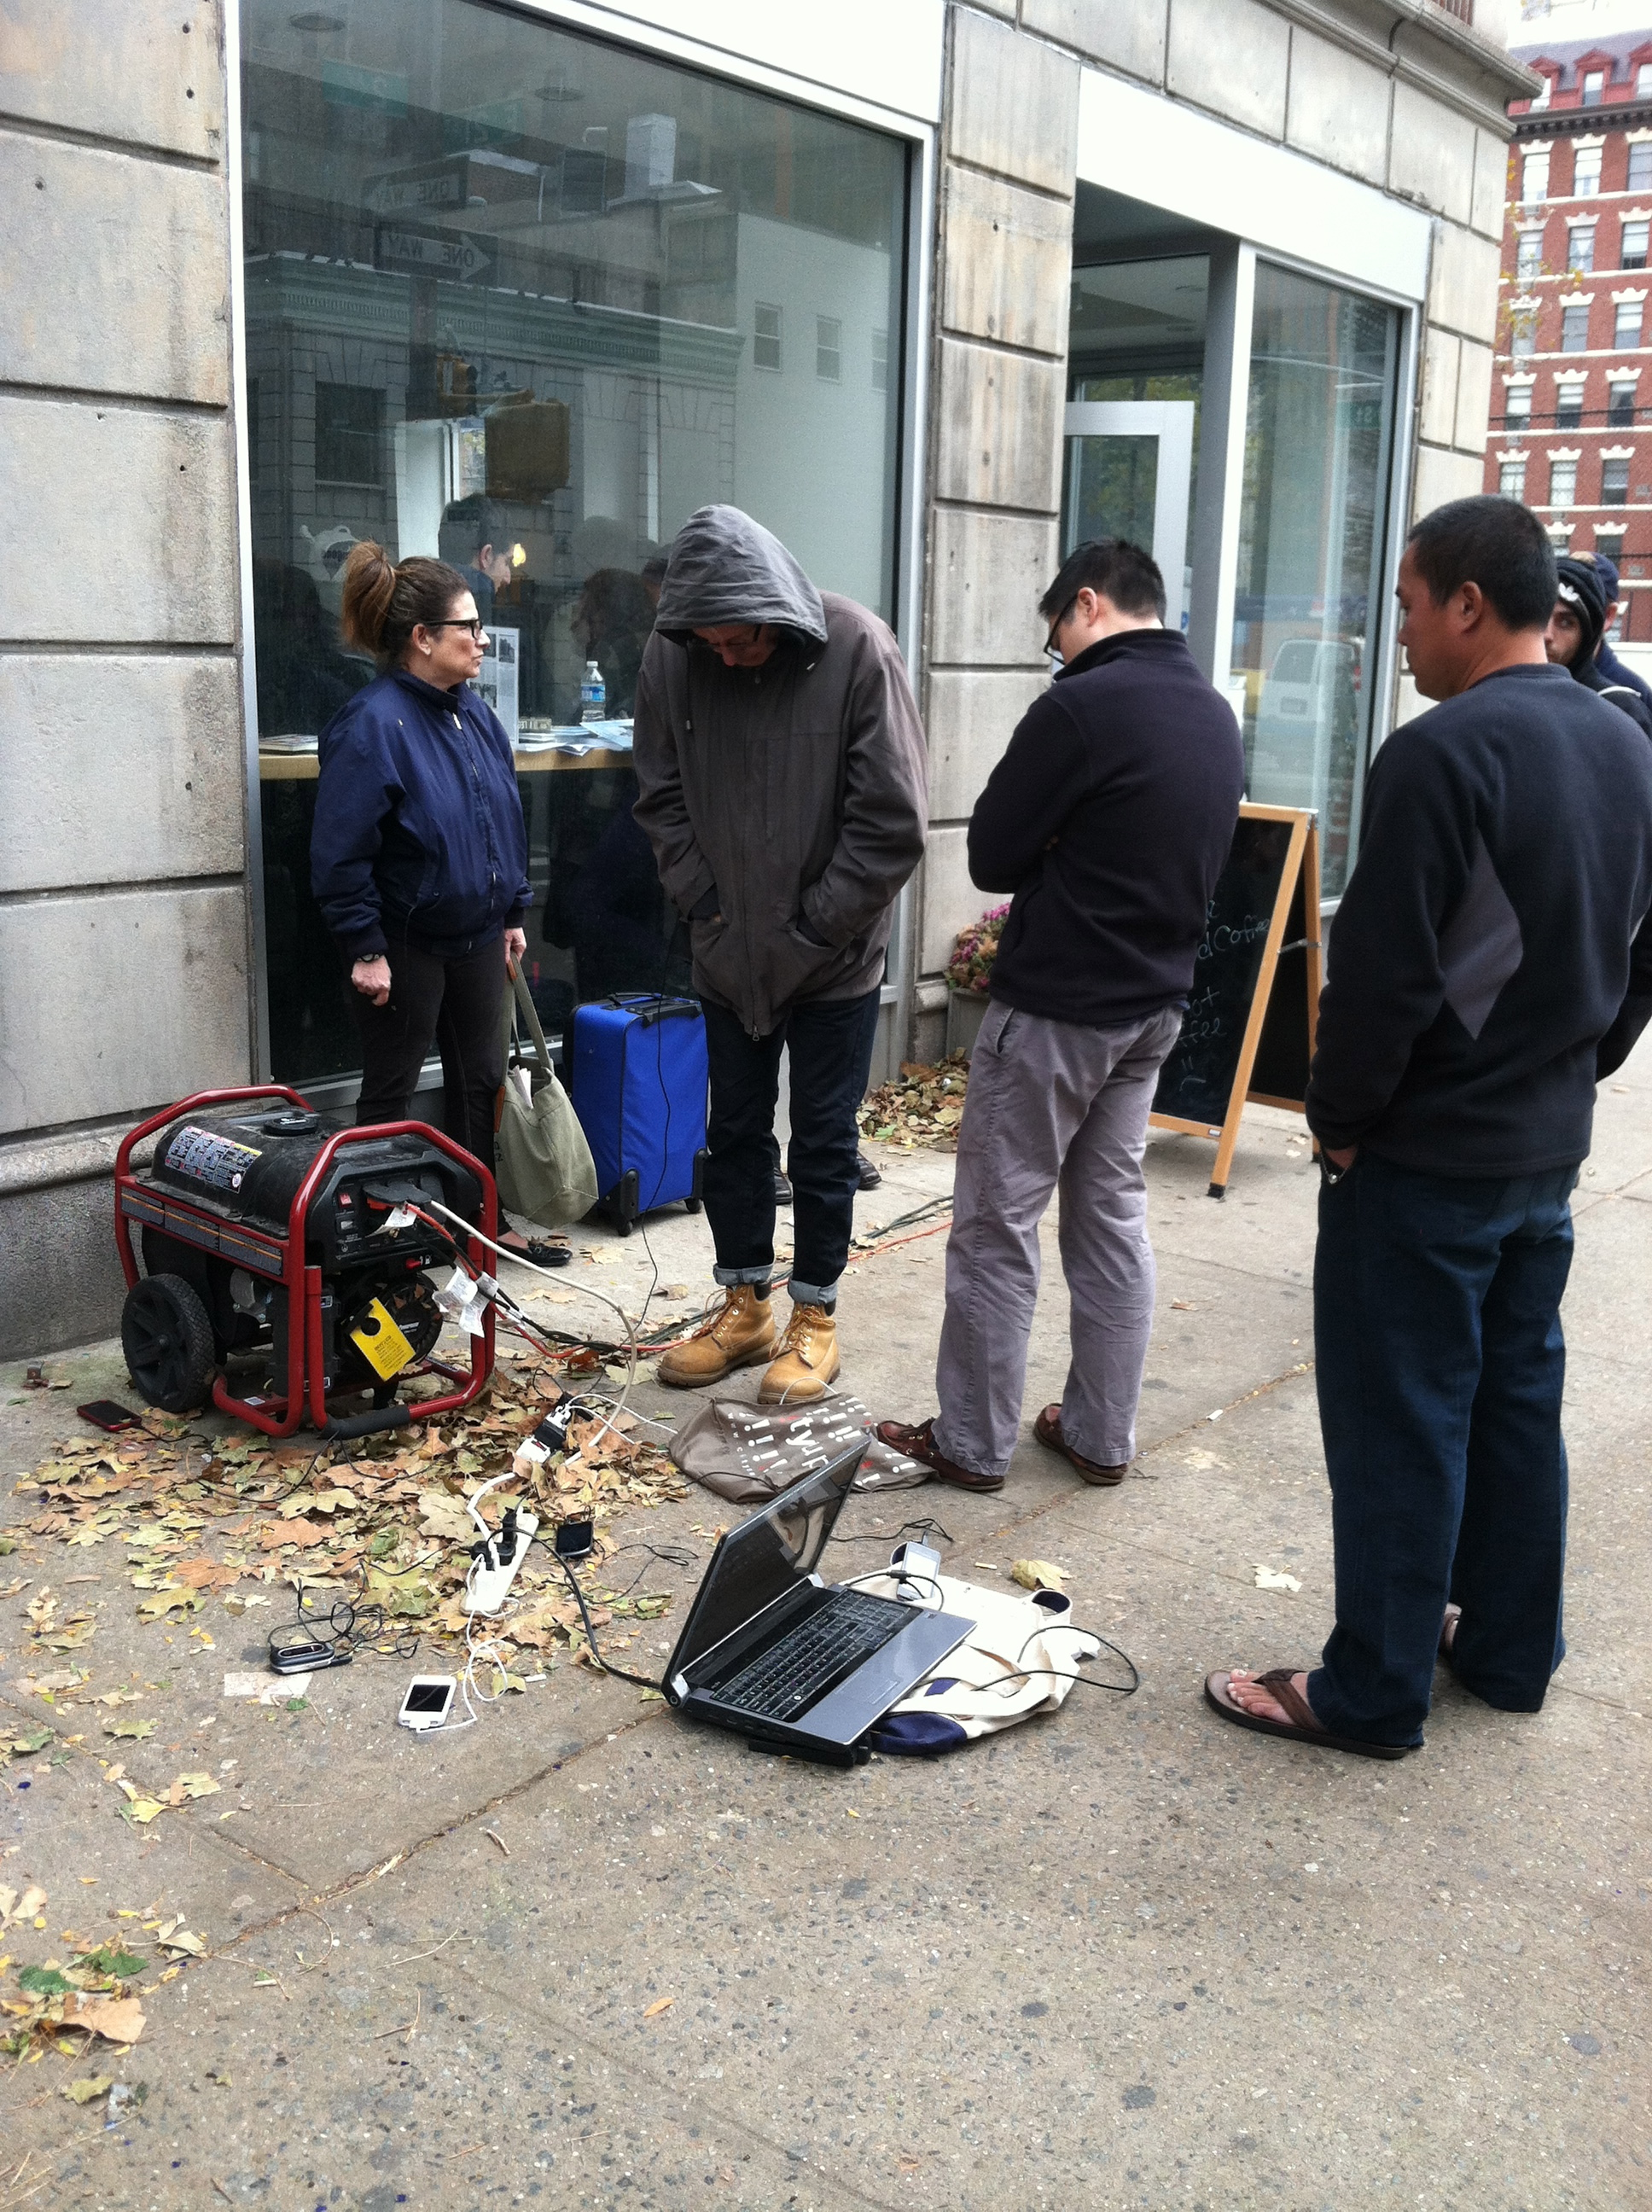 New York residents react to Con Ed explosion